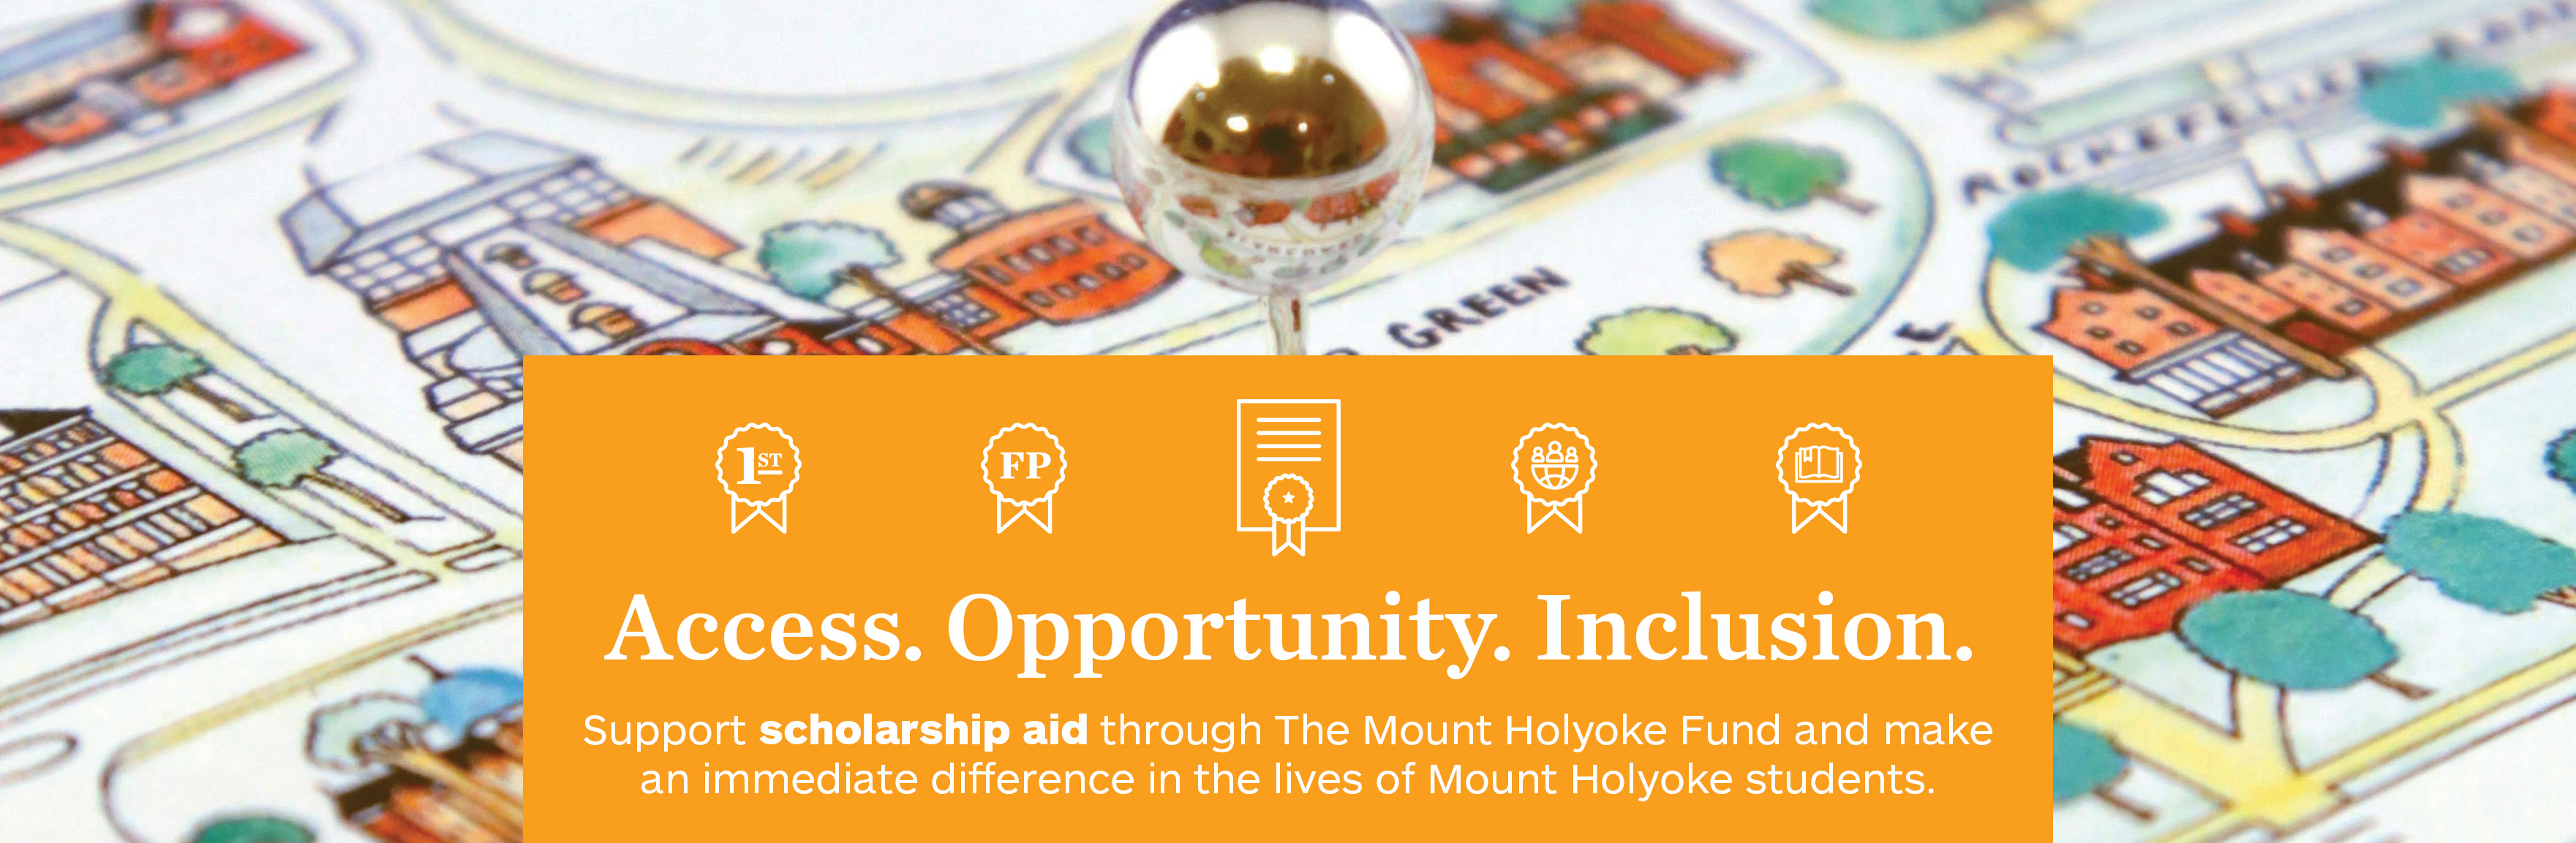 Access. Opportunity. Inclusion. Support MHC scholarship aid.